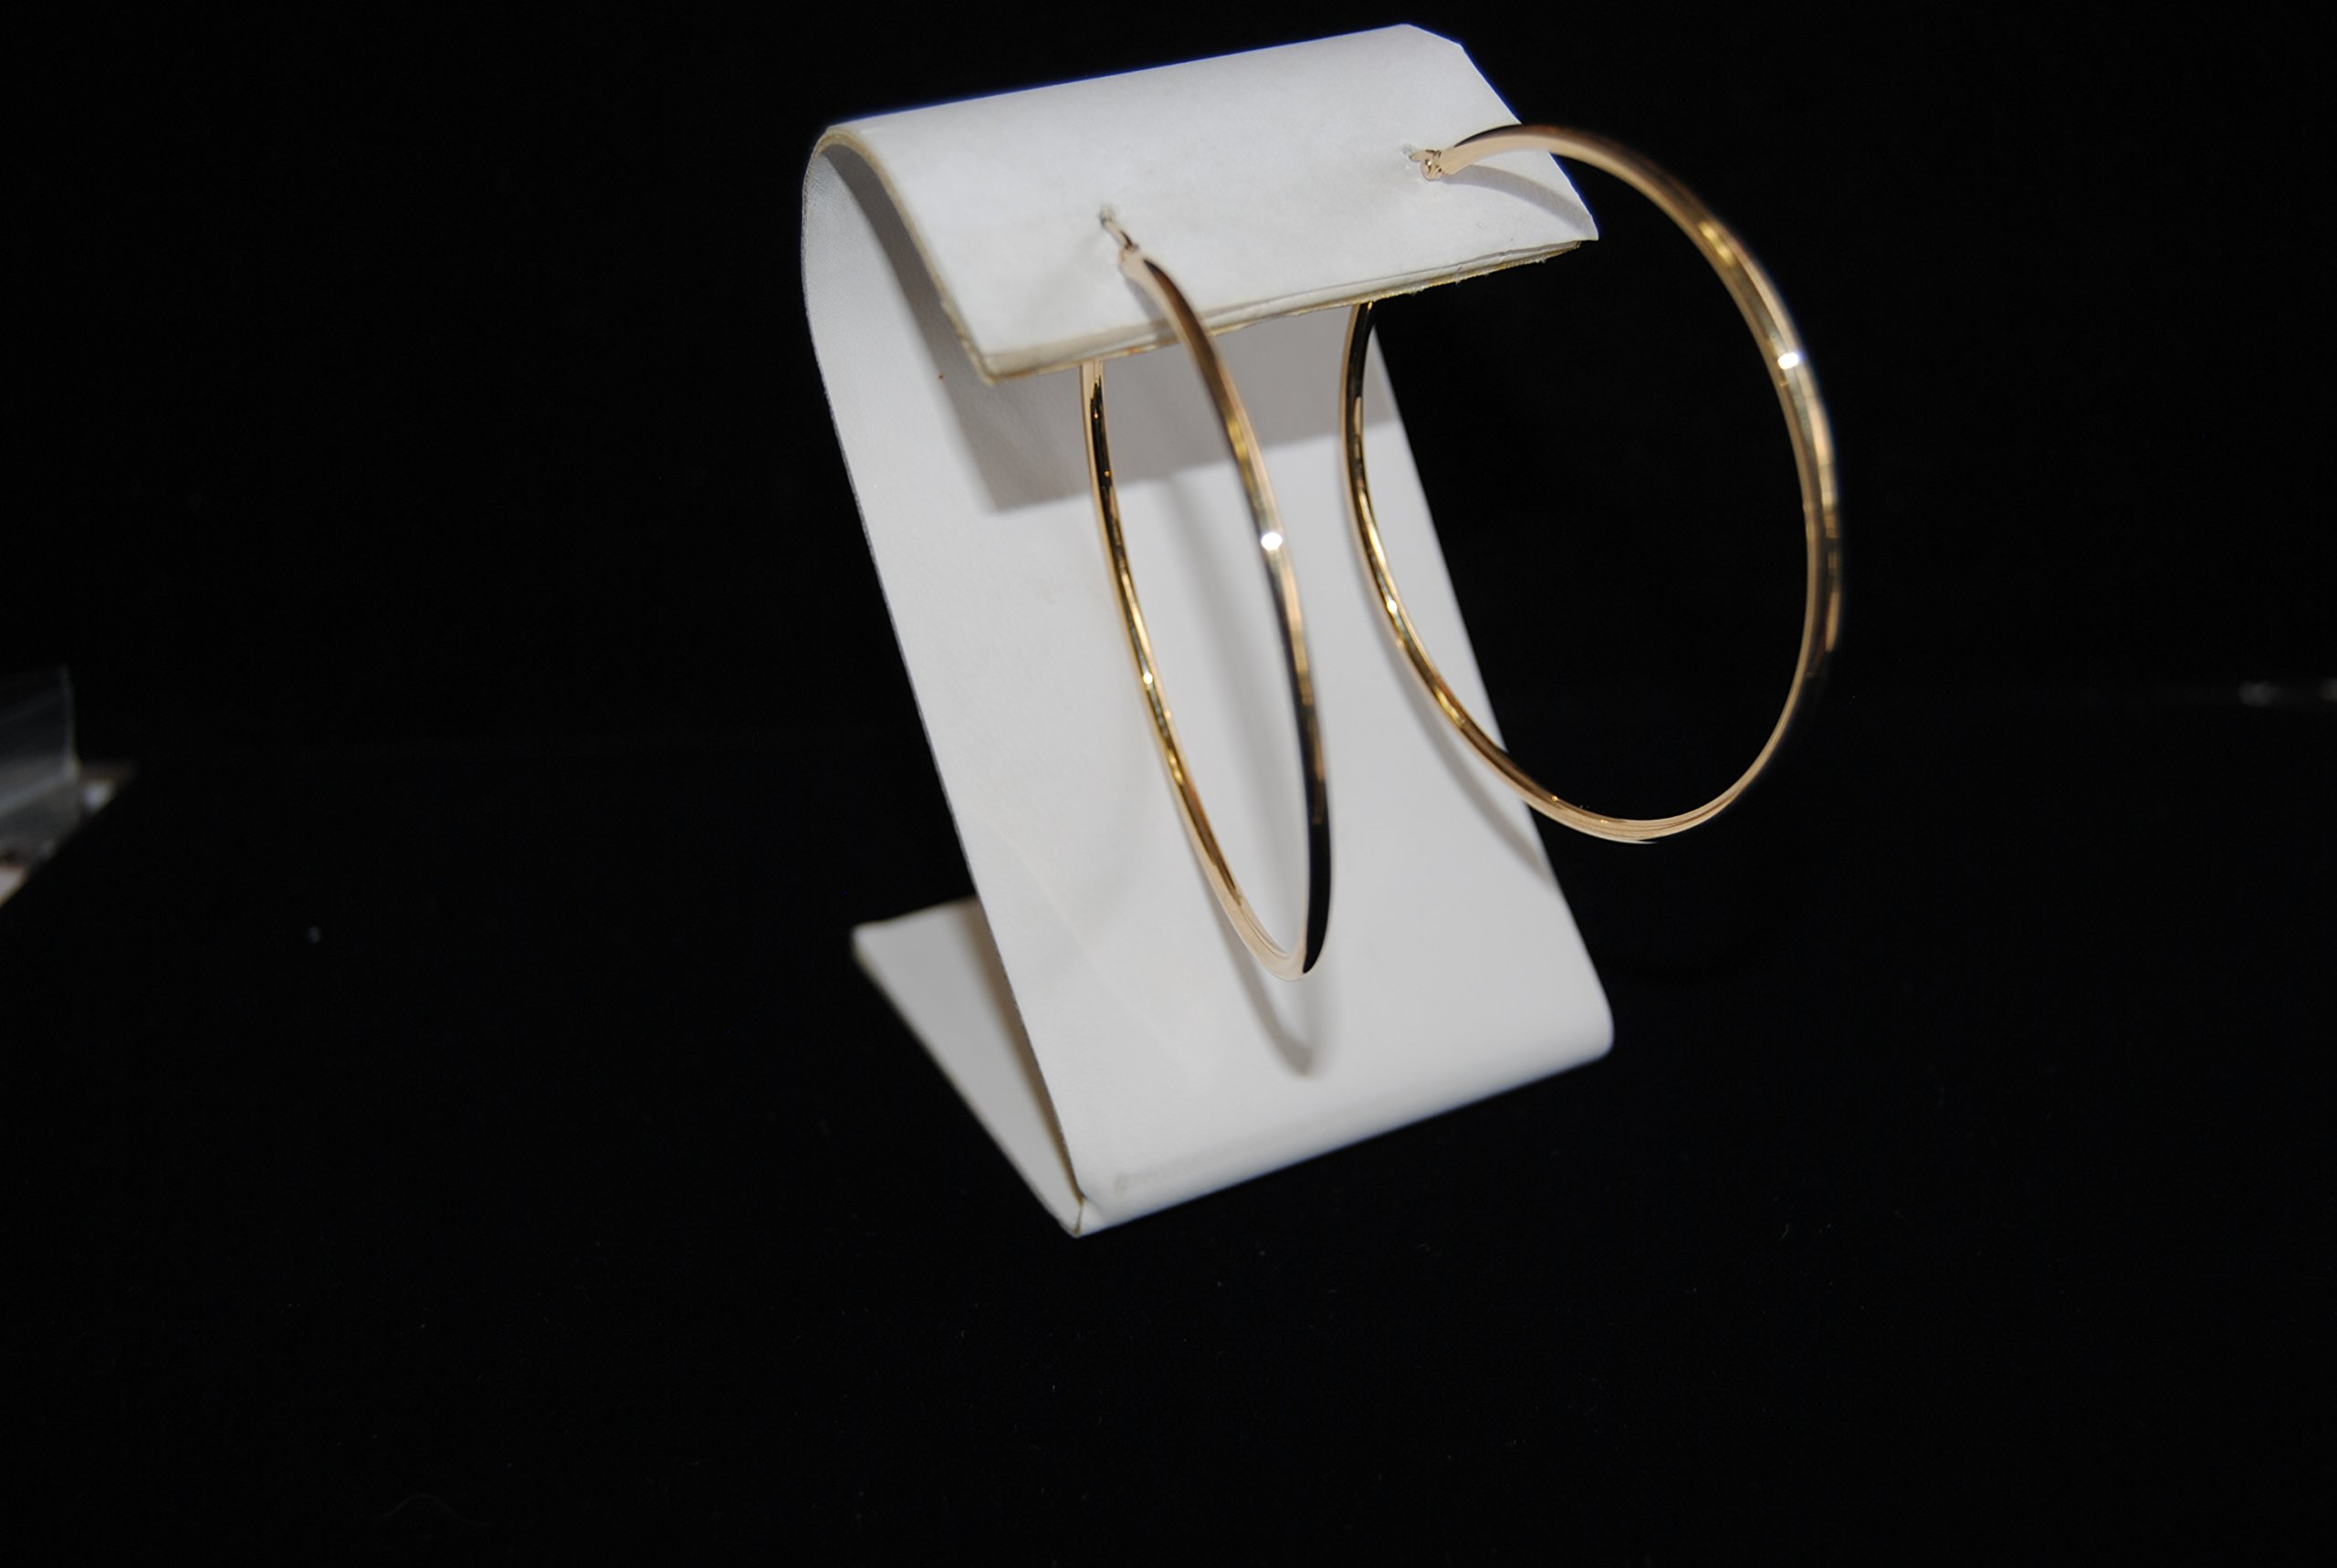 14K Yellow Gold 2 inch Hoop Earrings with Click Top Backing by Temecula Gold and Jewelry (Image #2)